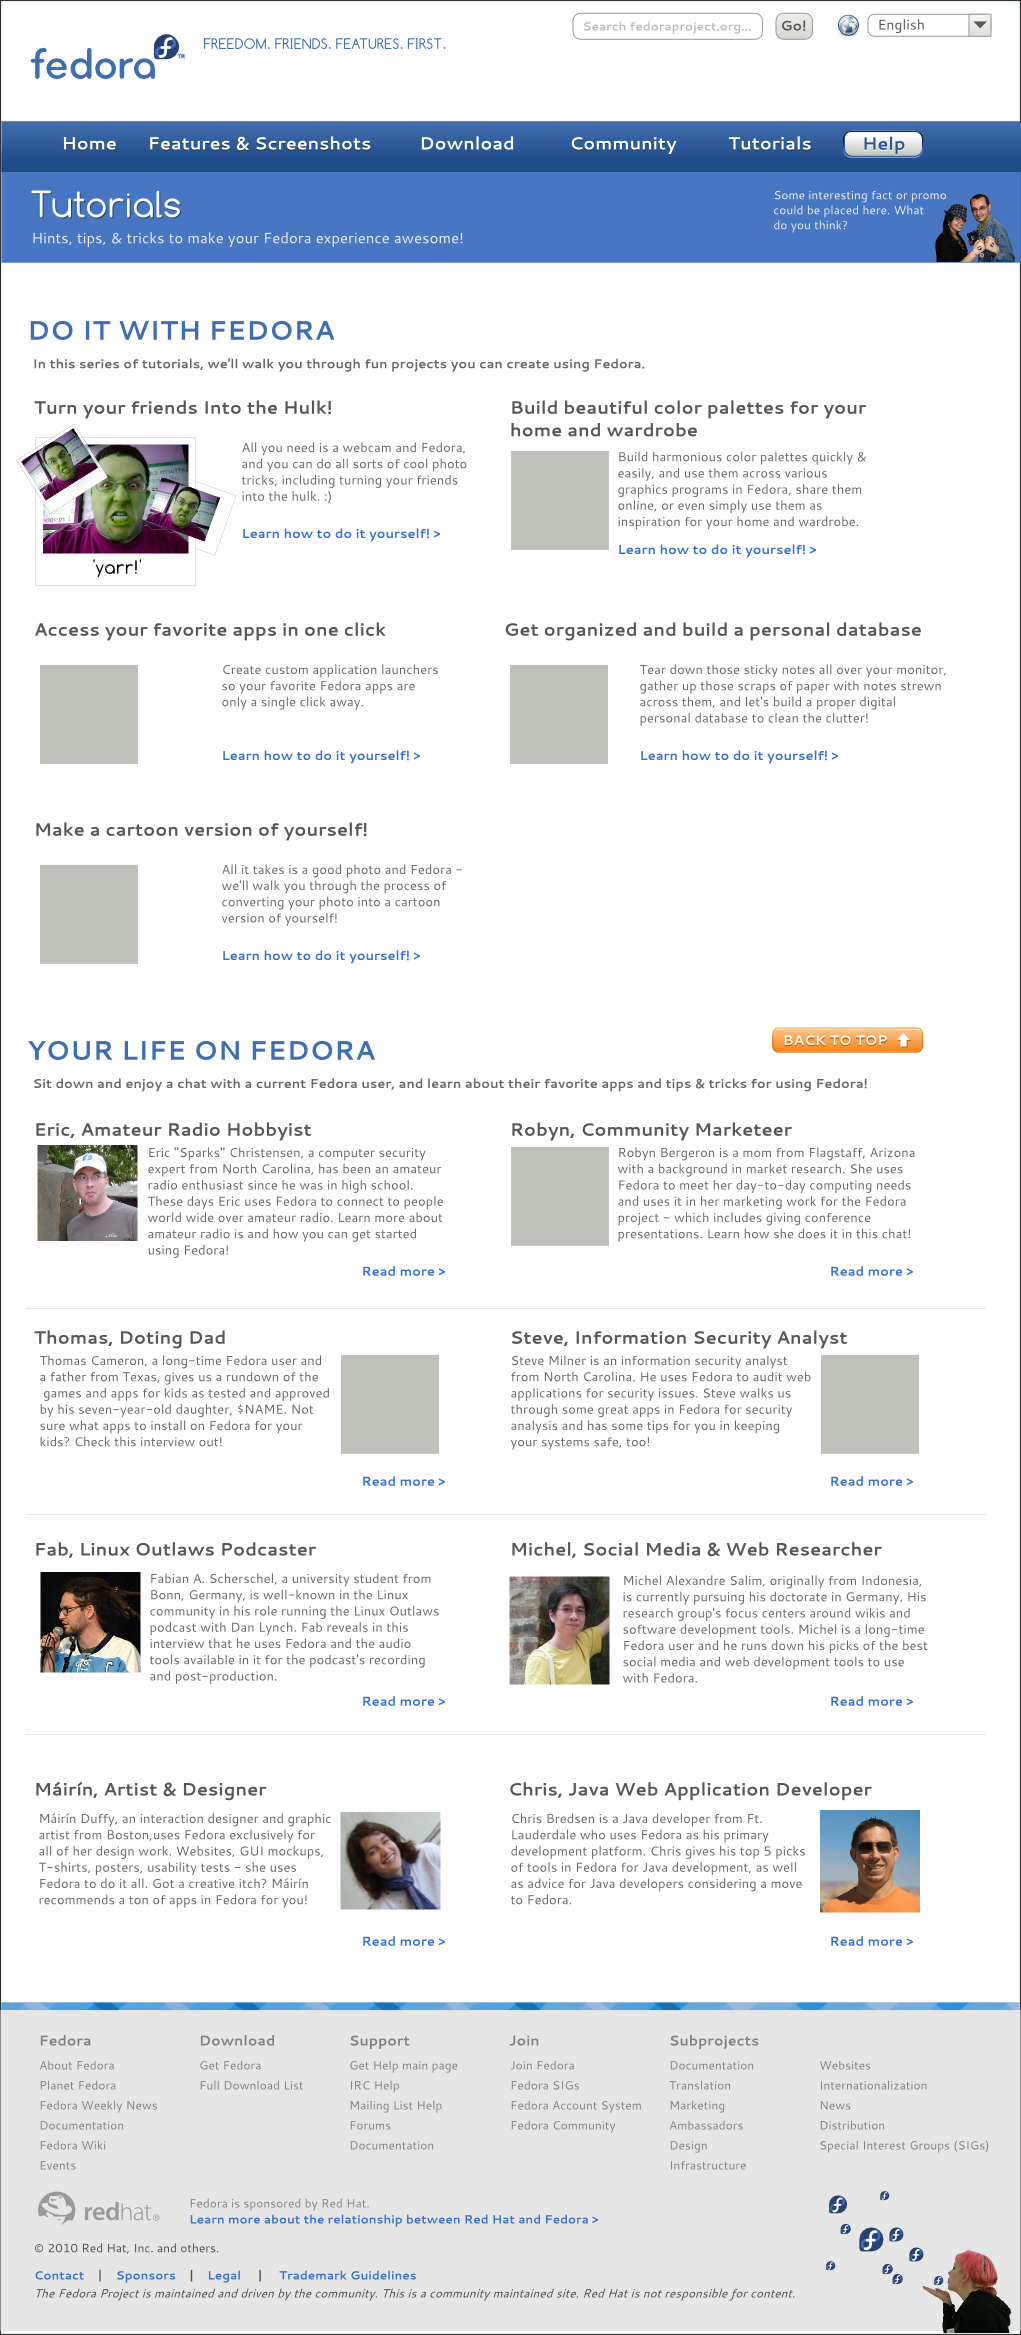 Wwwfpo-redesign-2010 6-tutorials.png